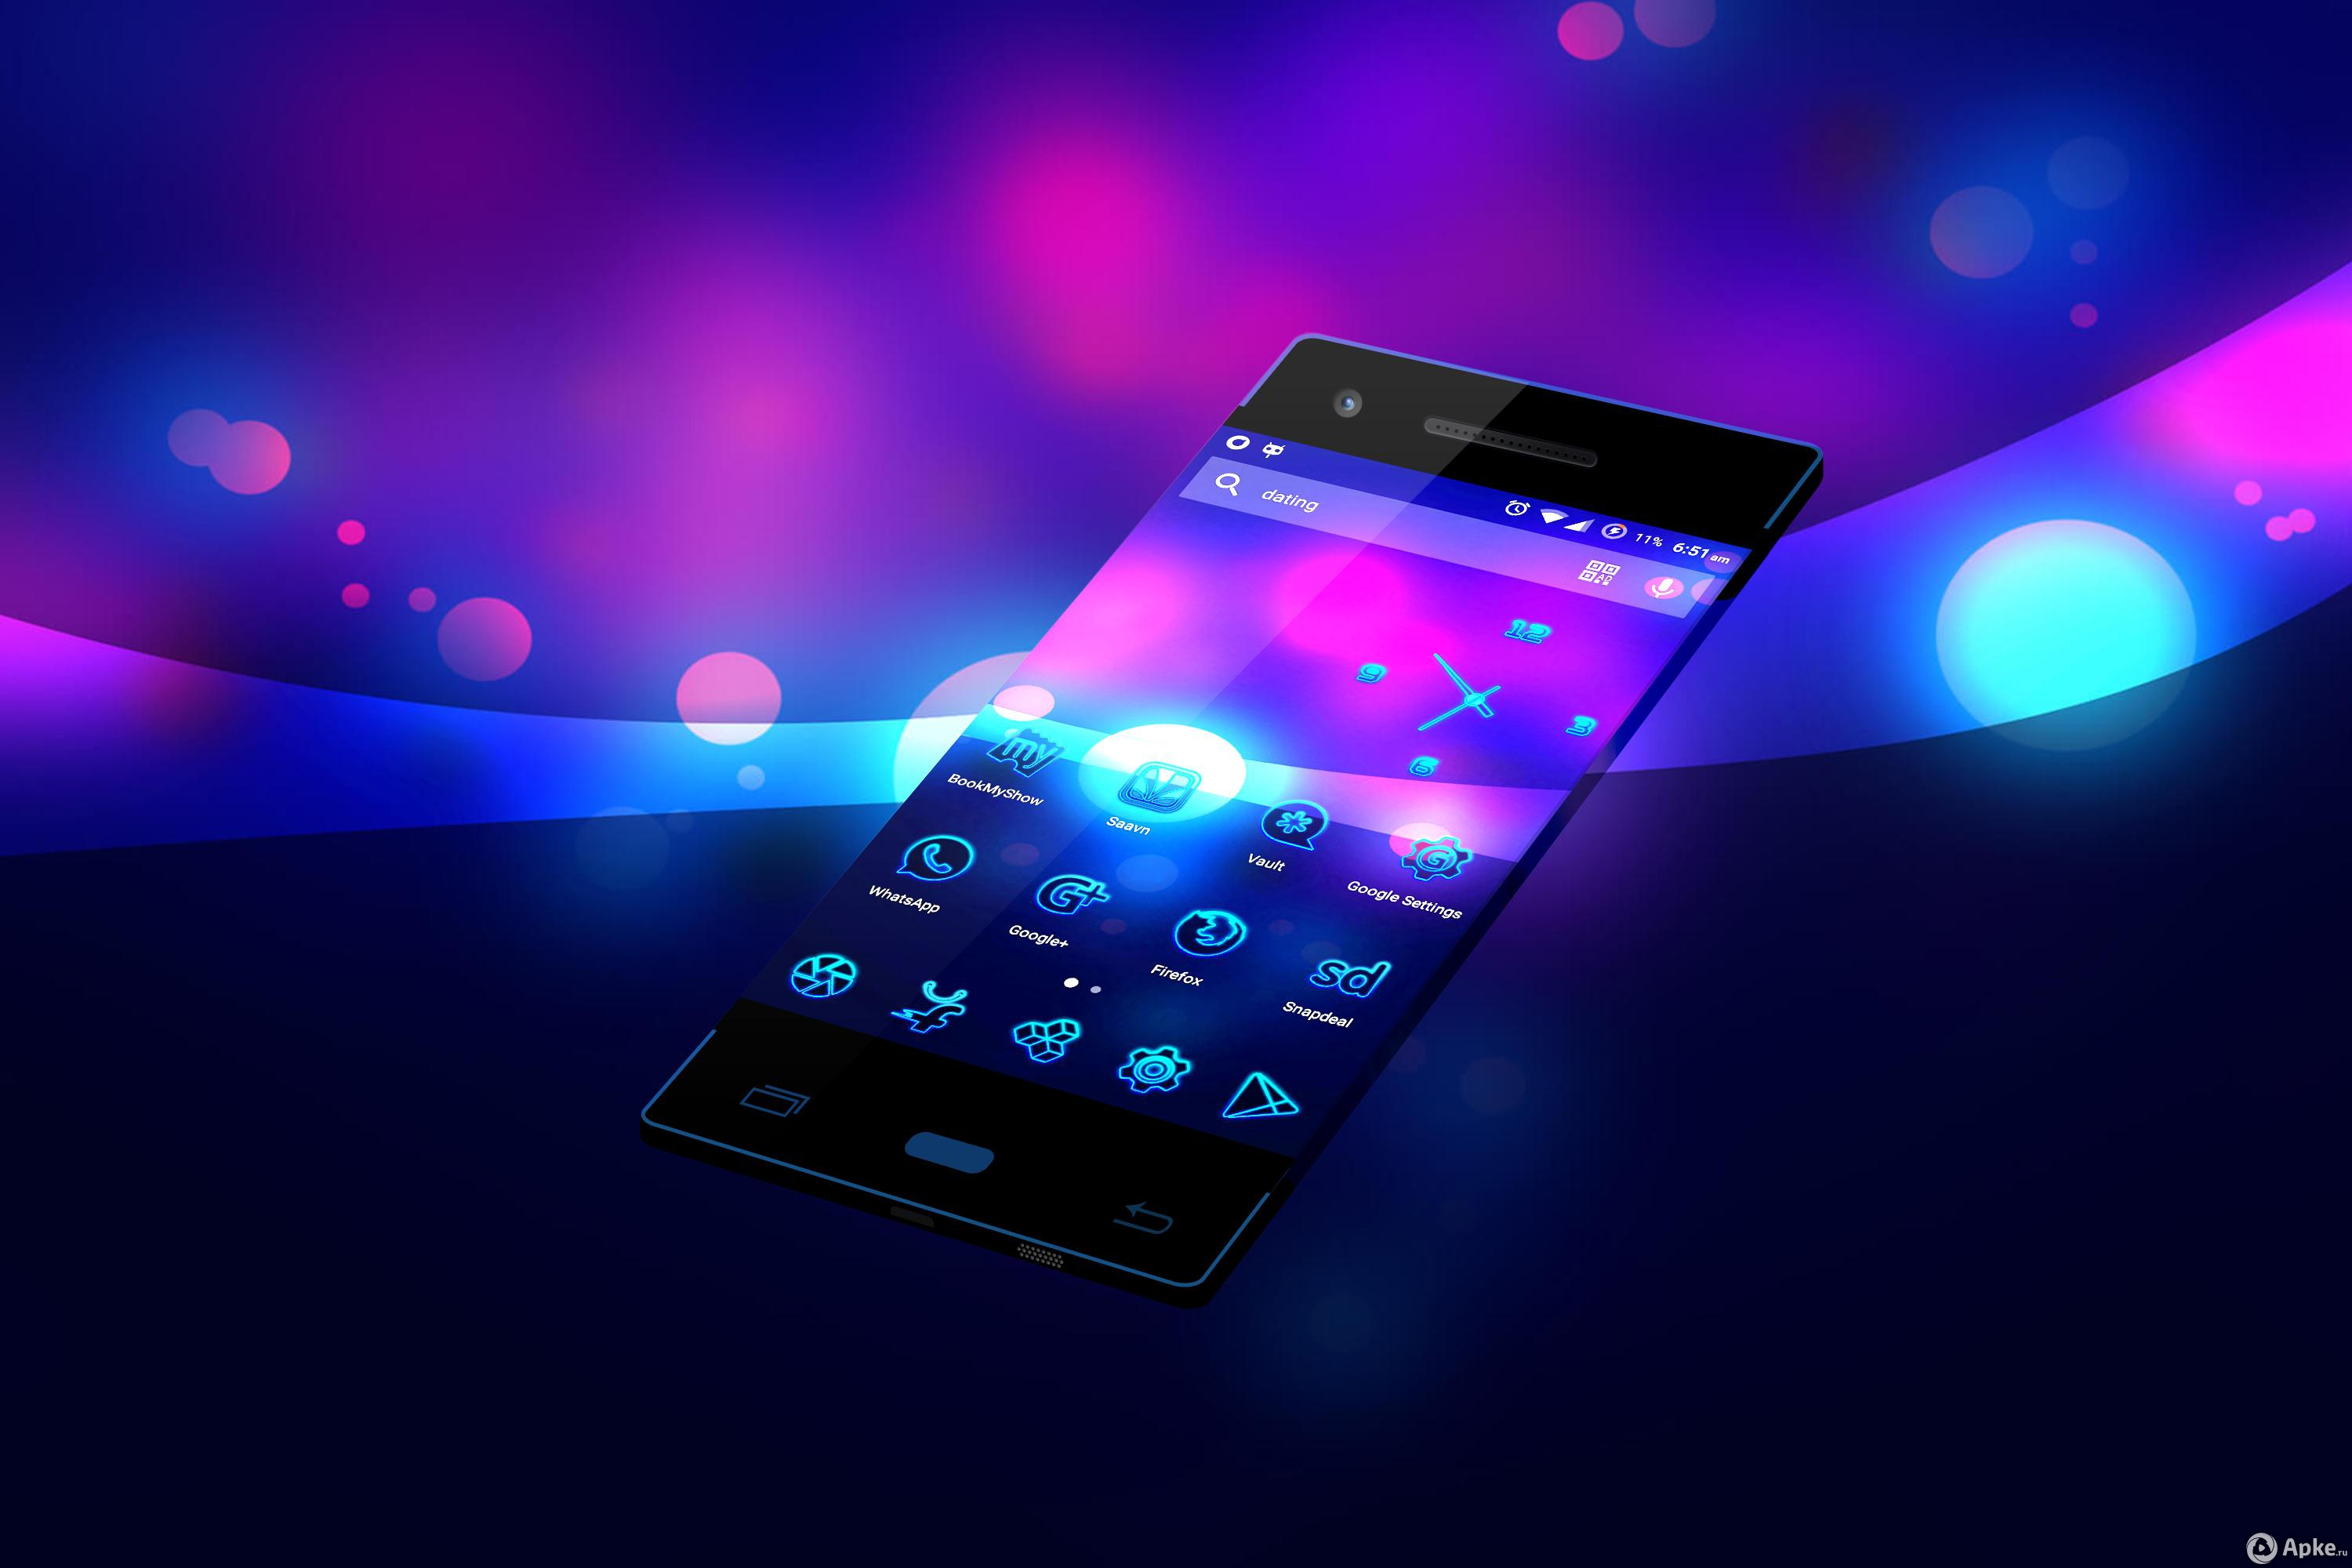 Free Themes Download For Android Mobile Phones - HD Wallpaper